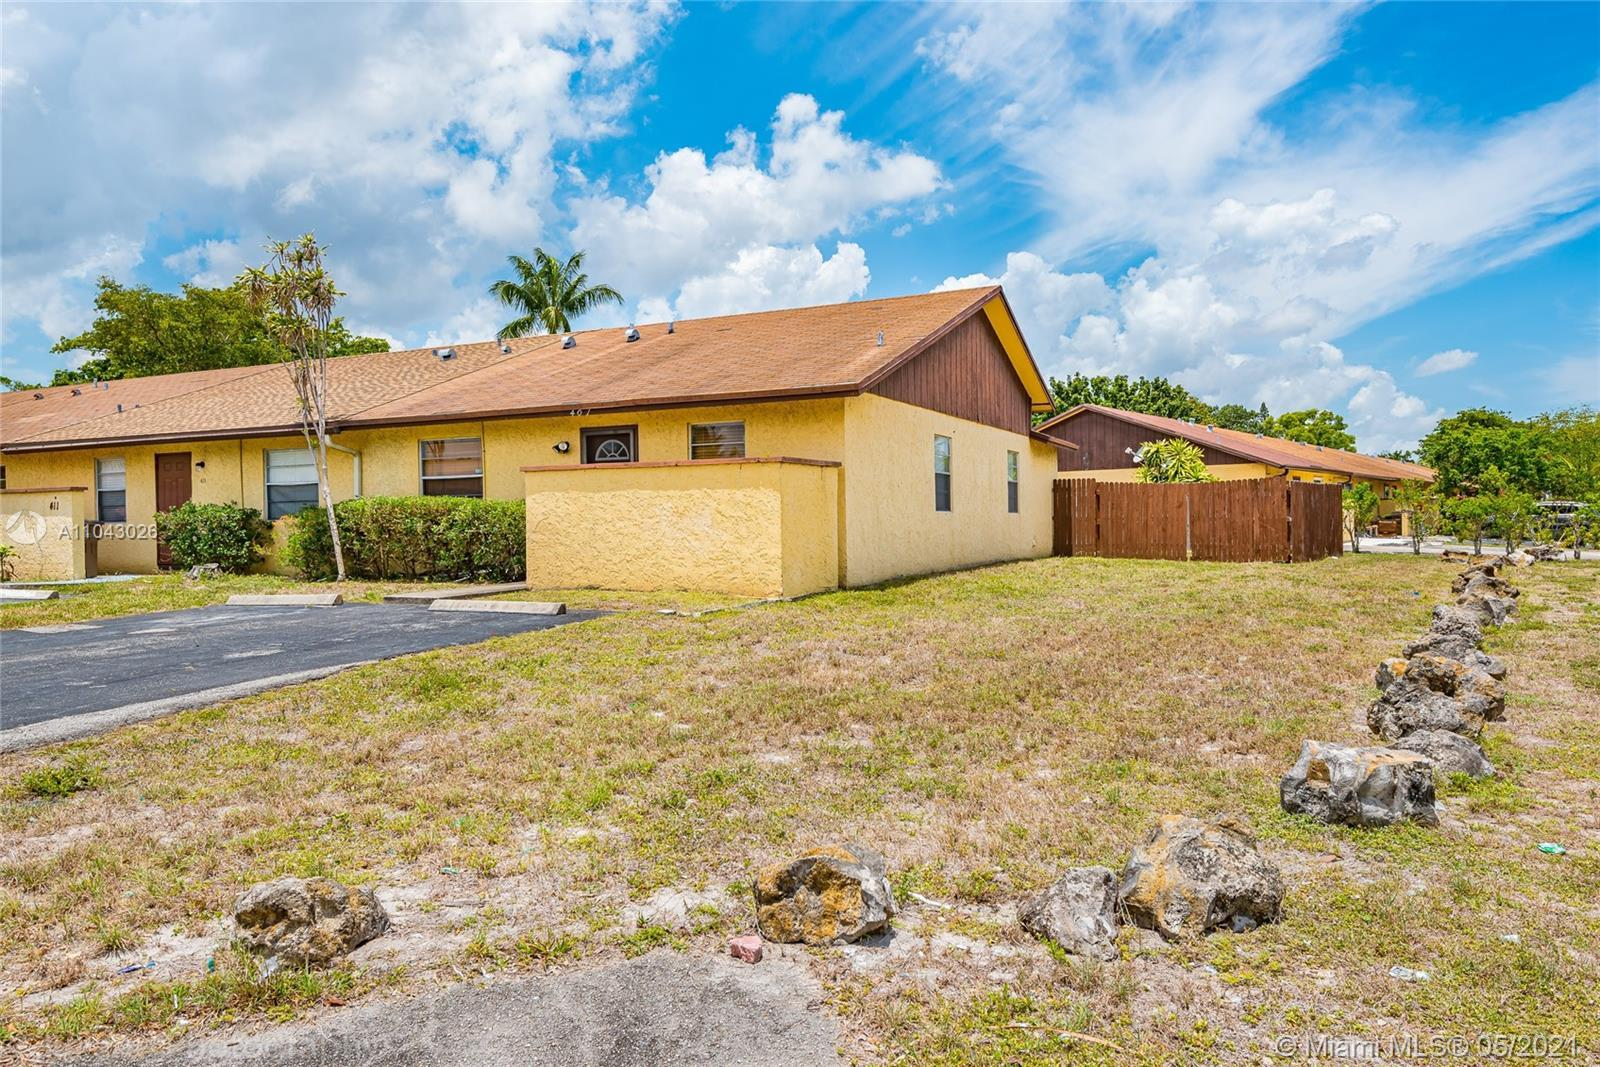 Bright and Spacious 2 Bedroom 2 Bath Corner Villa with Extra Window, Vaulted ceilings, Fenced Backya